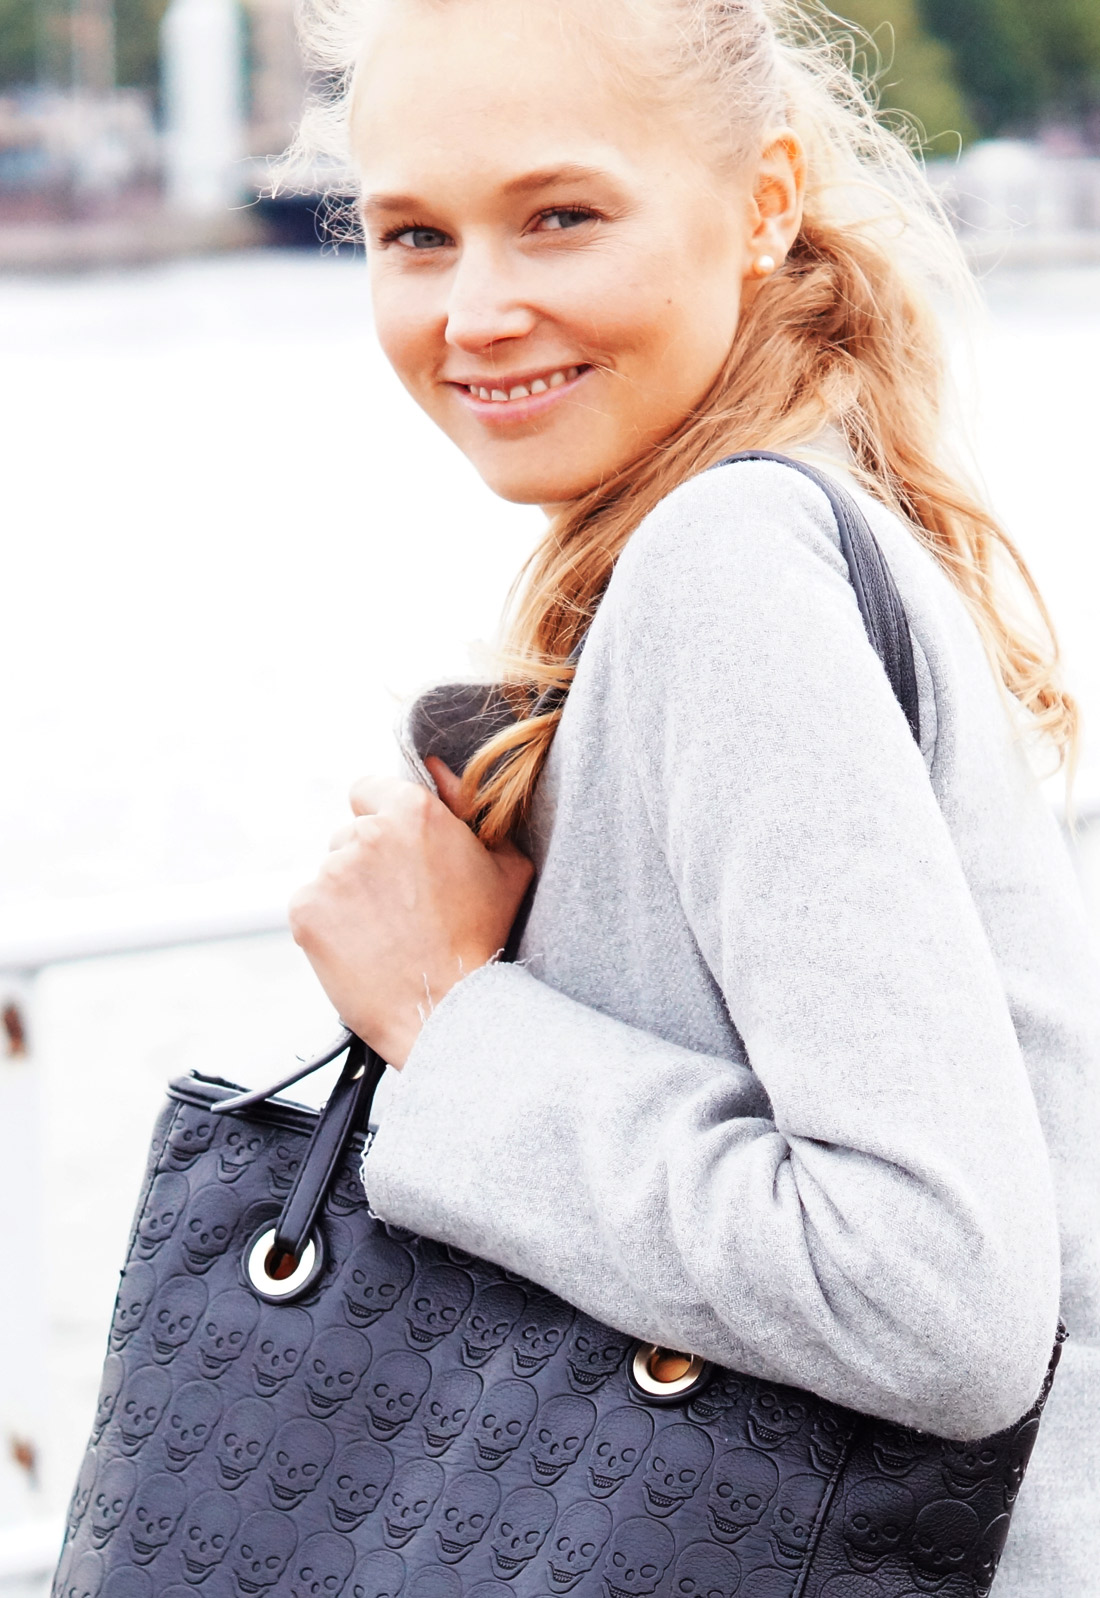 Bag-at-you---Fashion-blog---Frederique-of-Fab-Le-Frique-and-her-bag---Smile